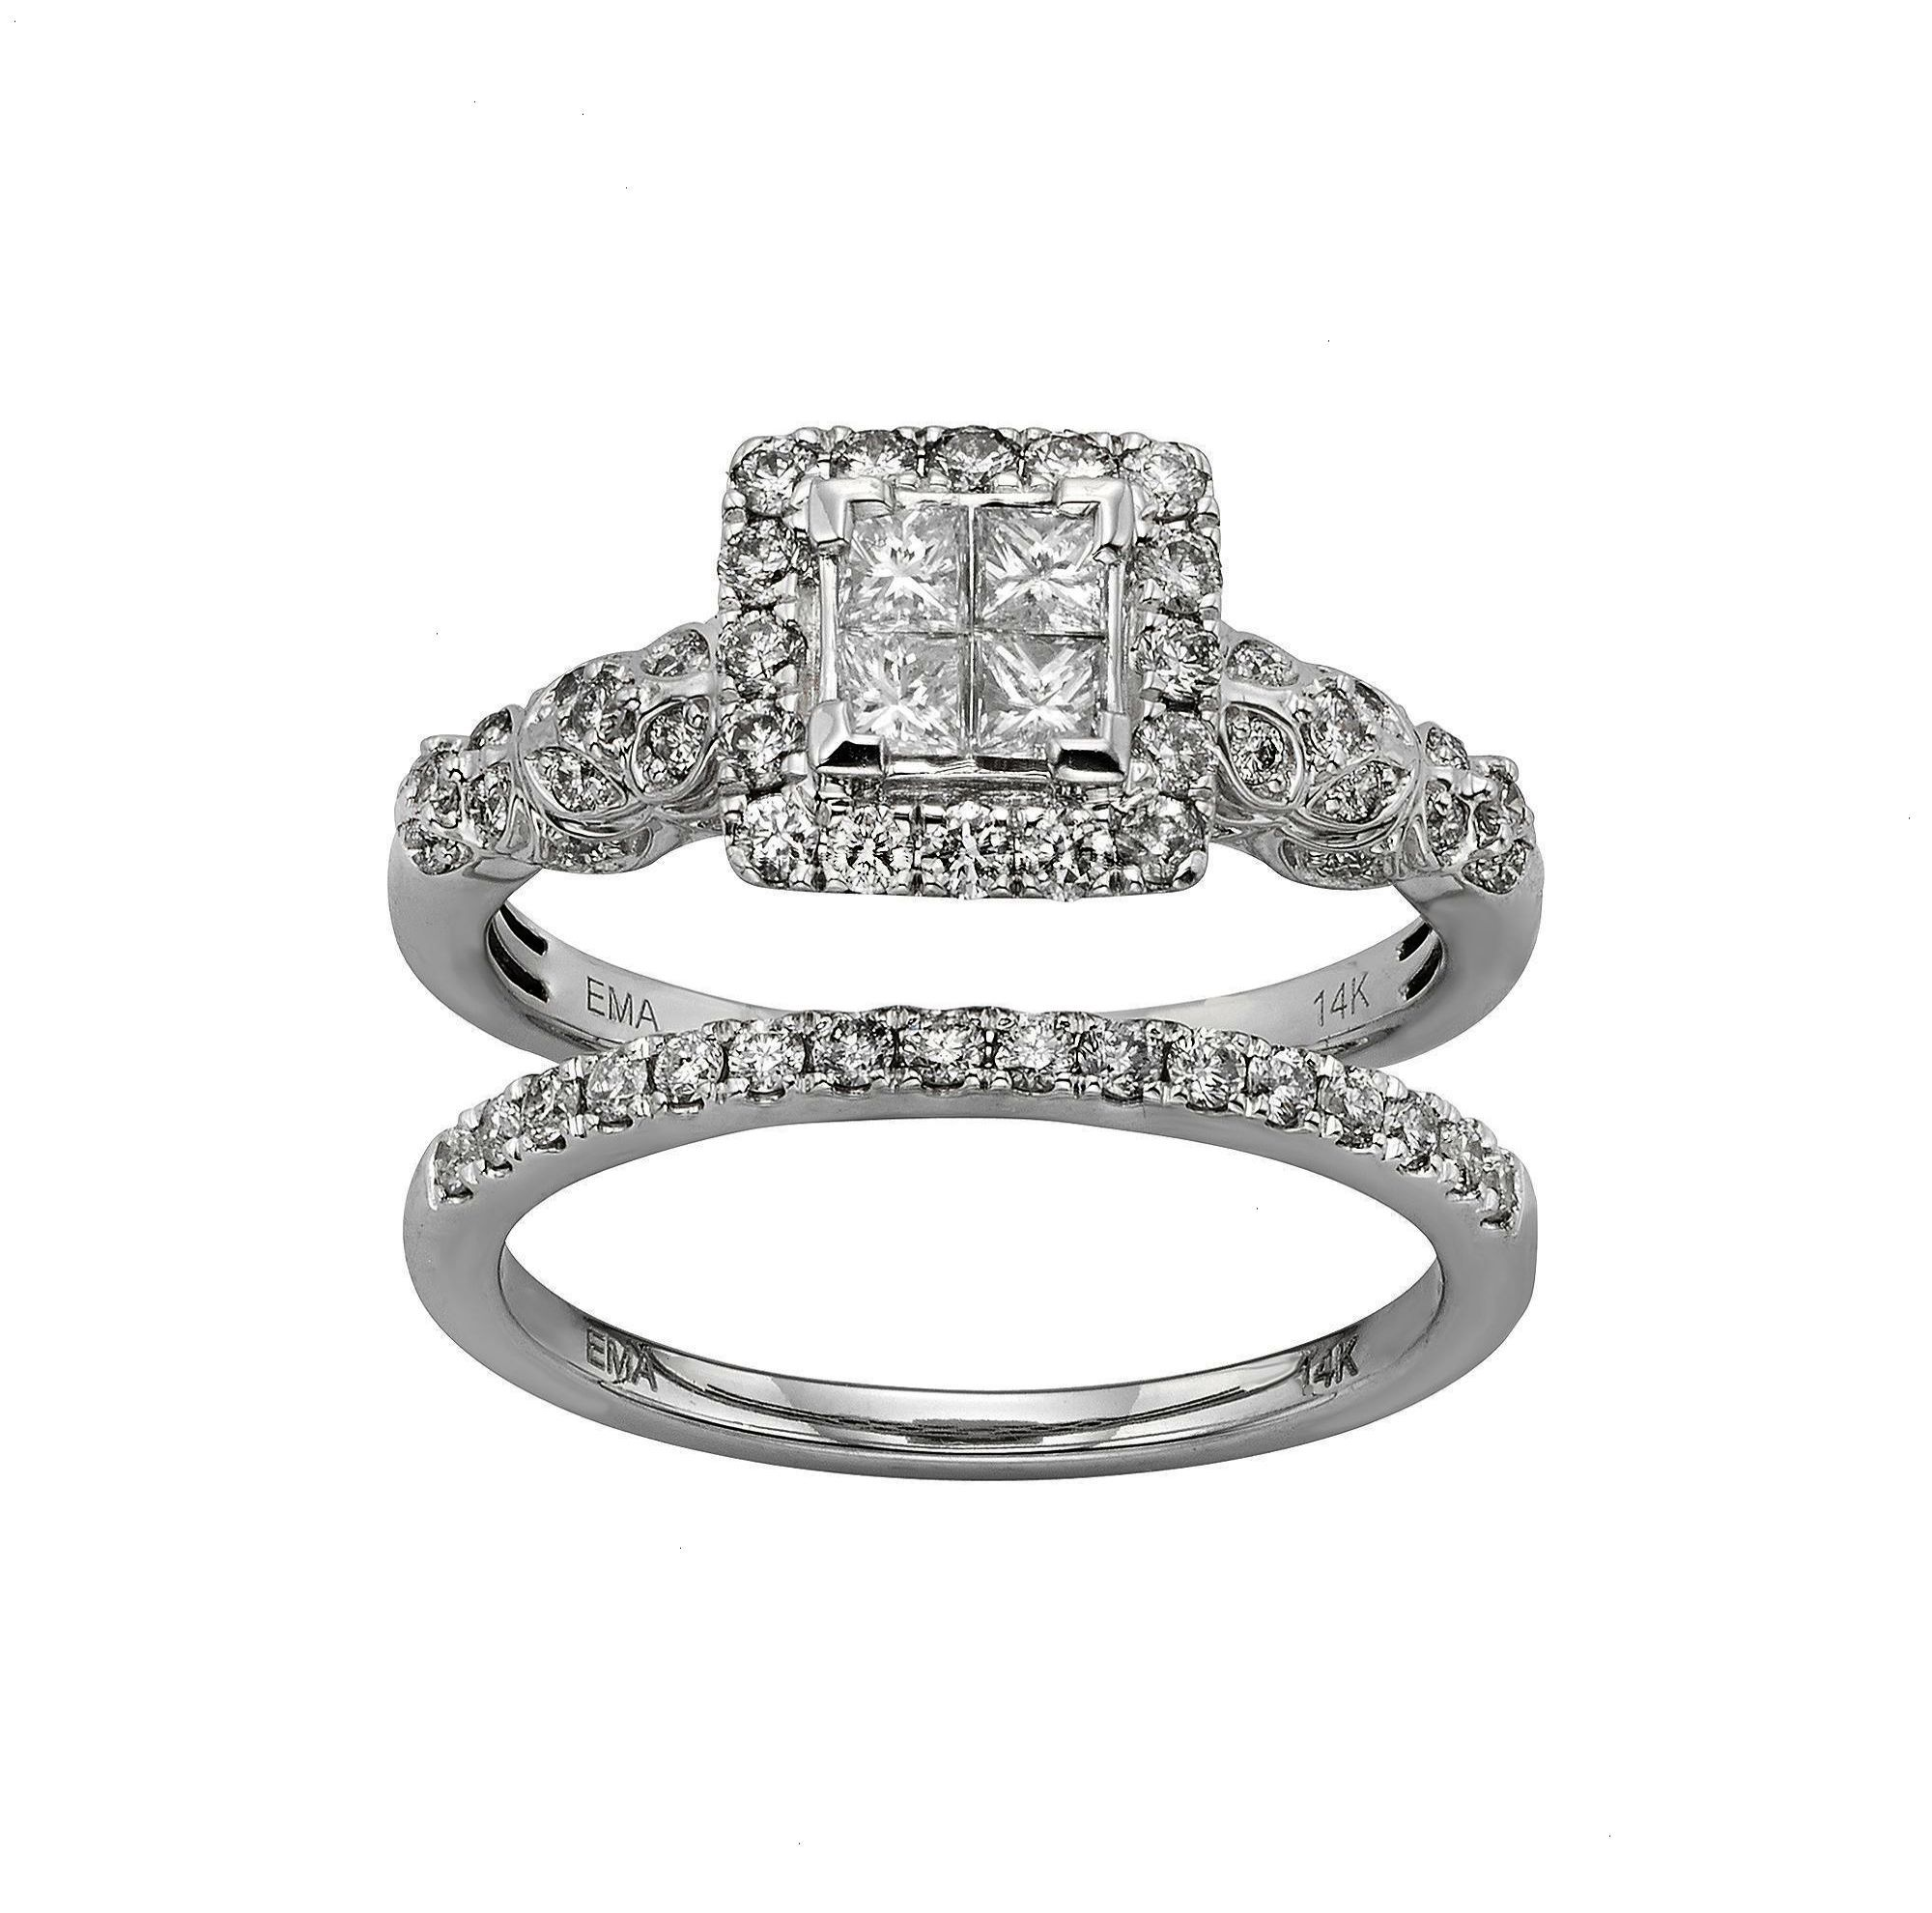 rock michaelkorsinc what of wedding cubic ring is engagement sets punk for zirconia rings her